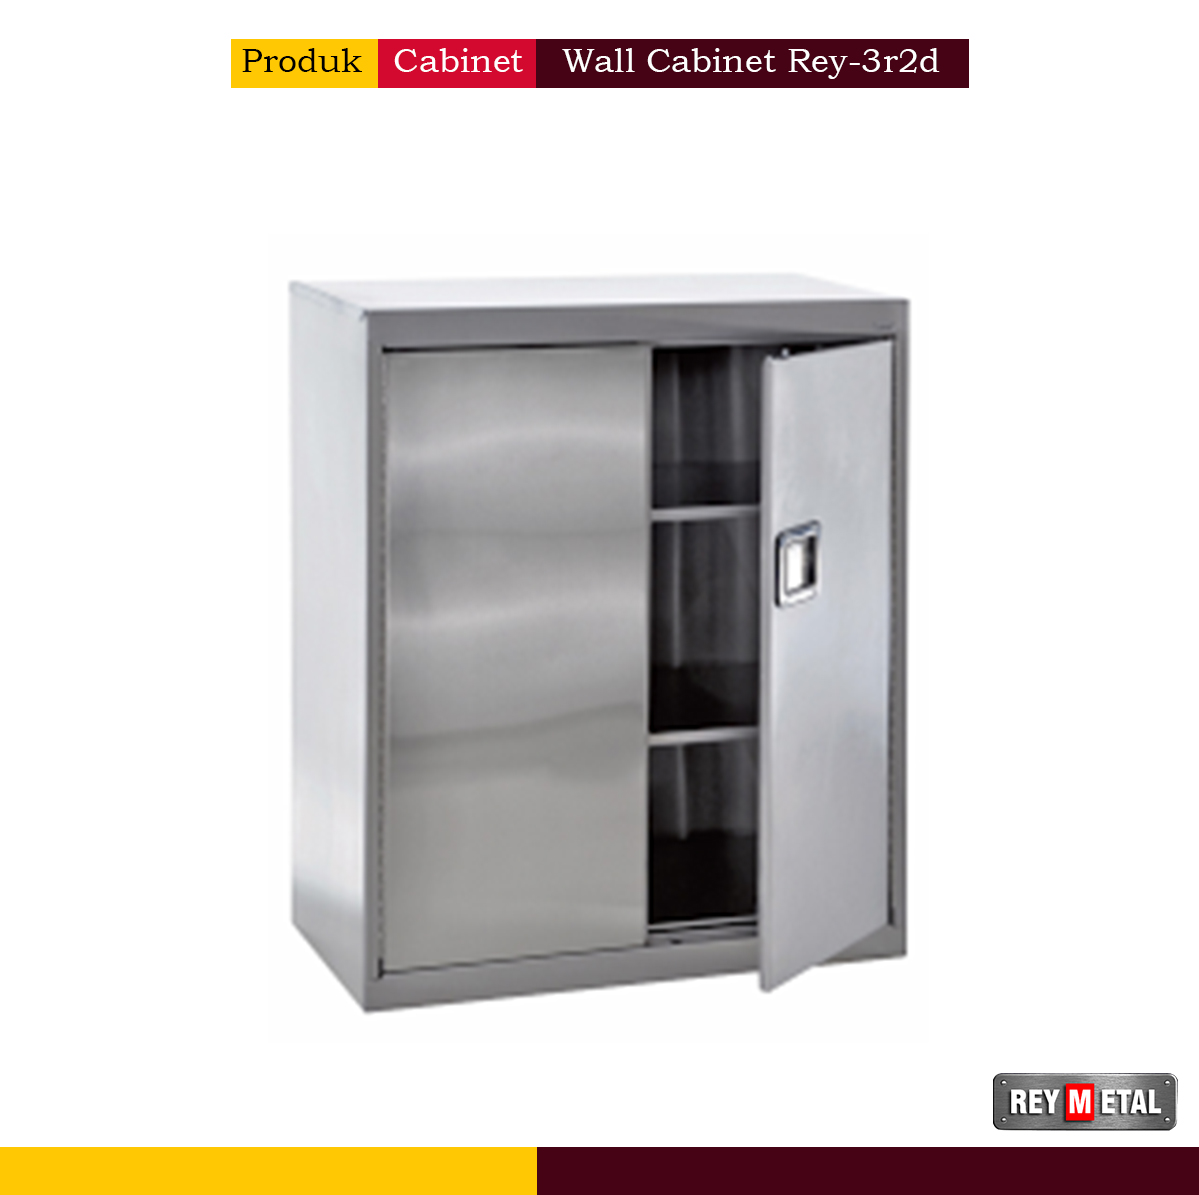 Wall Cabinet Stainless Remetal.com